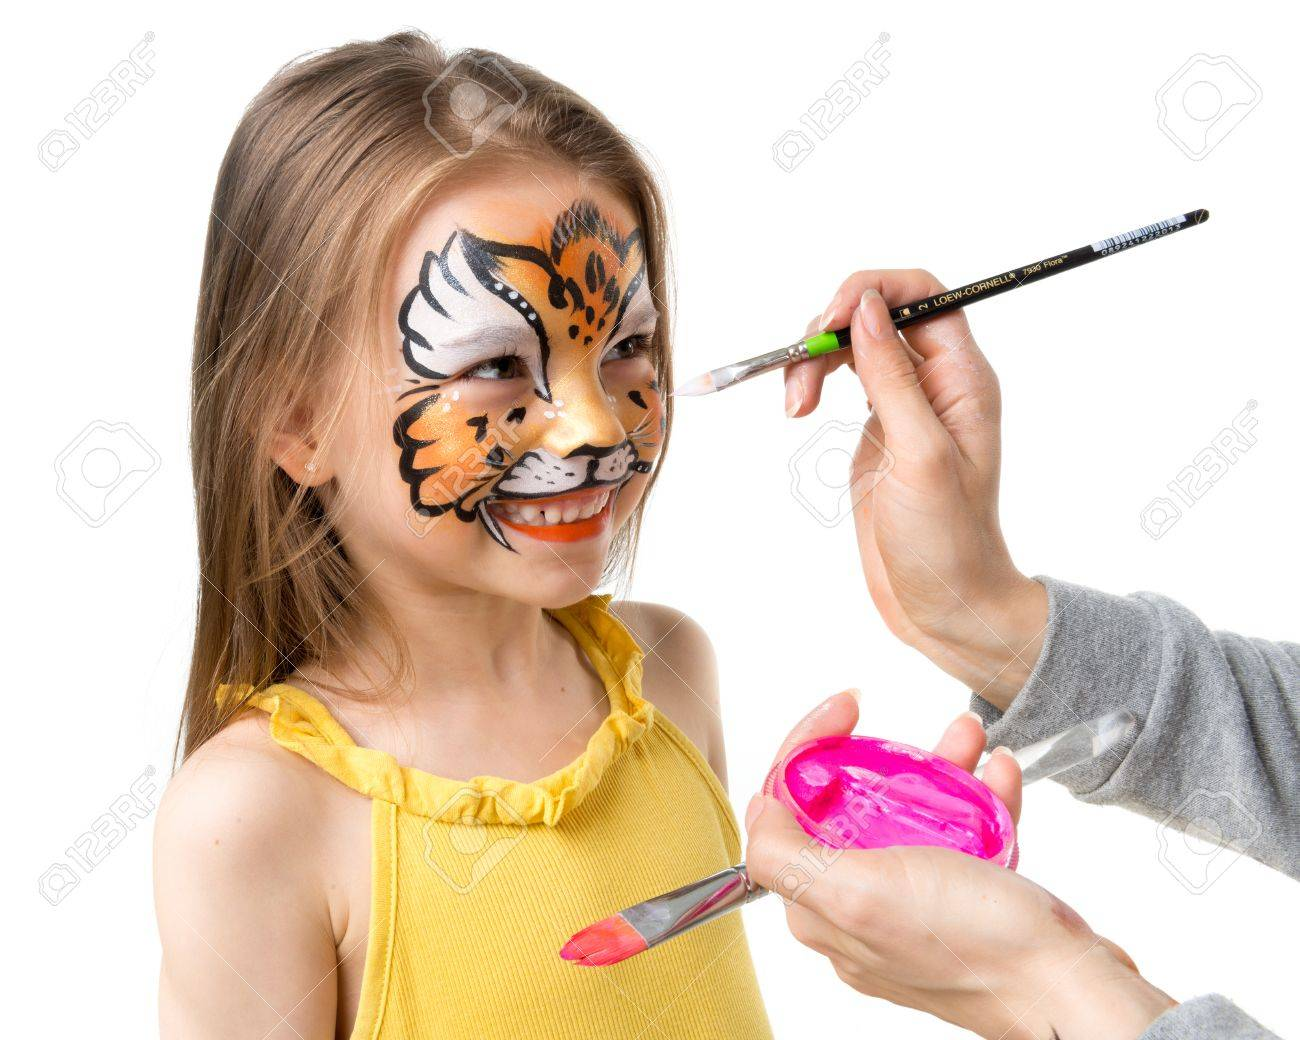 joyful little girl getting her face painted like tiger by artist - 66160250